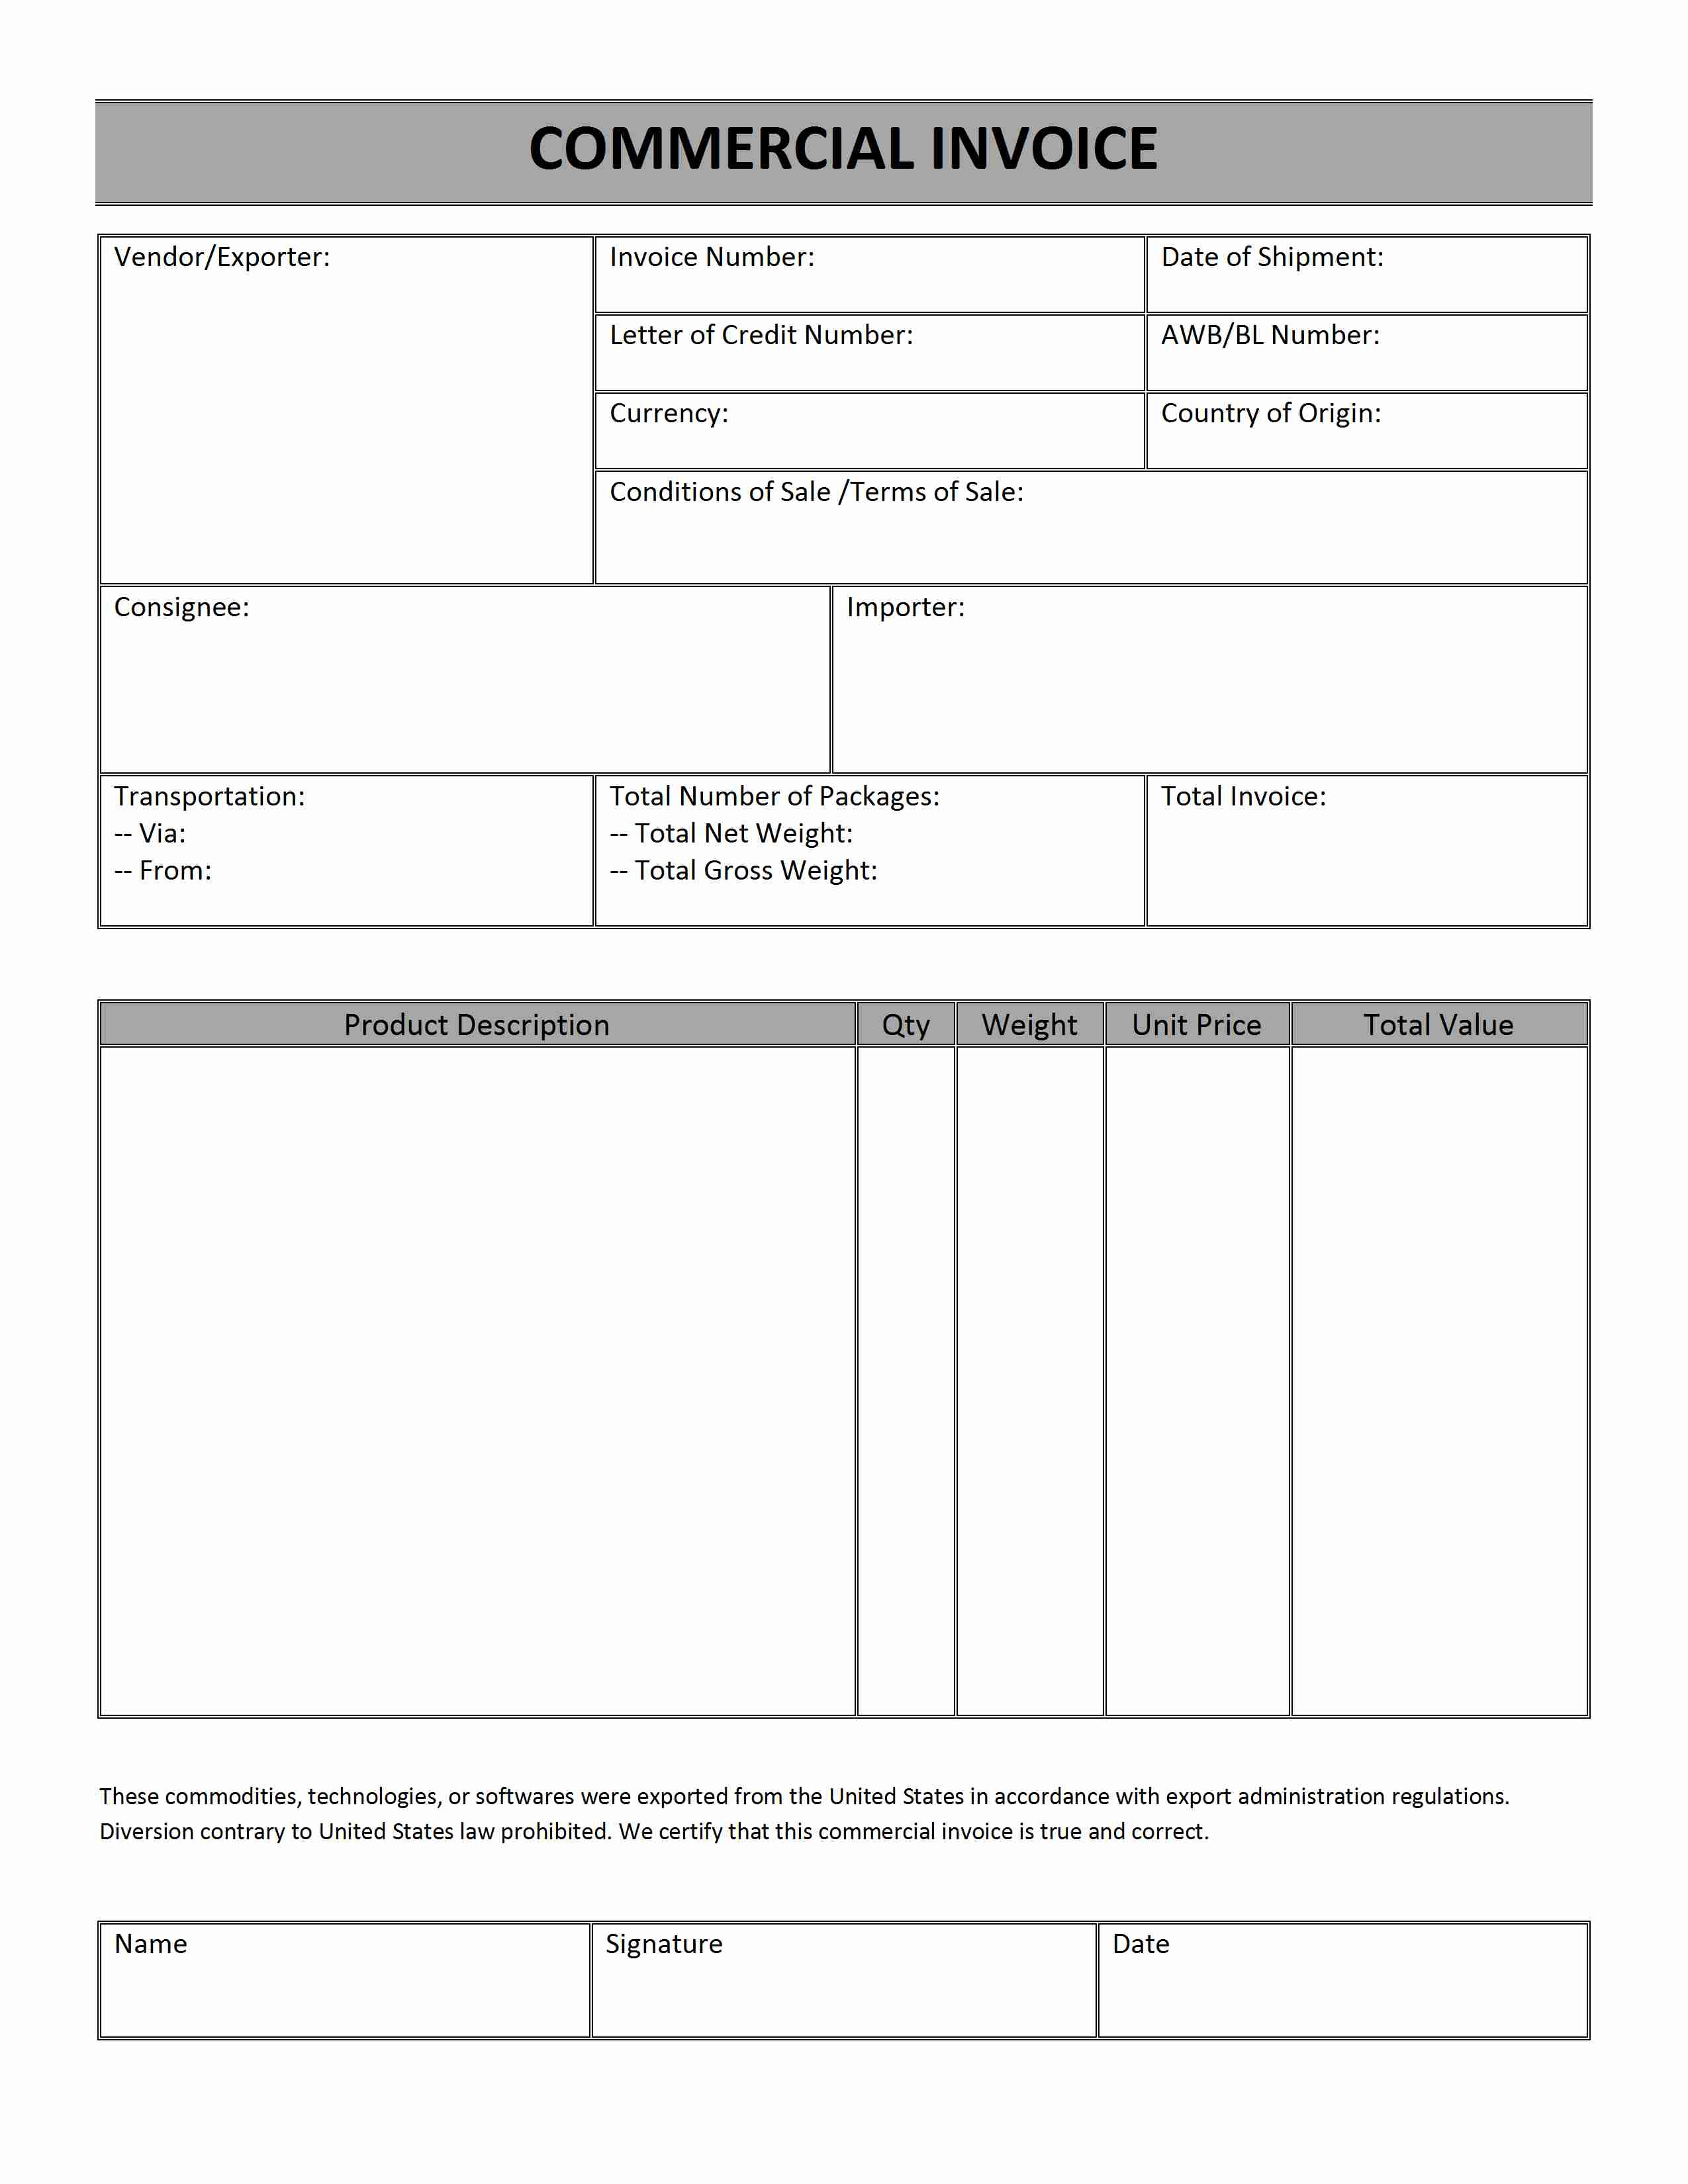 Barneybonesus  Prepossessing Printable Sales Invoice Simple Invoice Form Free Invoice  With Licious Printable Receipt Free  Free Printable Raffle Tickets  Receipt   Printable With Divine Online Invoice Creation Also Rental Invoice Template Free In Addition Receipt Of The Invoice And Creative Invoice Designs As Well As Cost Invoice Additionally Invoice Template Word  Free Download From Happytomco With Barneybonesus  Licious Printable Sales Invoice Simple Invoice Form Free Invoice  With Divine Printable Receipt Free  Free Printable Raffle Tickets  Receipt   Printable And Prepossessing Online Invoice Creation Also Rental Invoice Template Free In Addition Receipt Of The Invoice From Happytomco